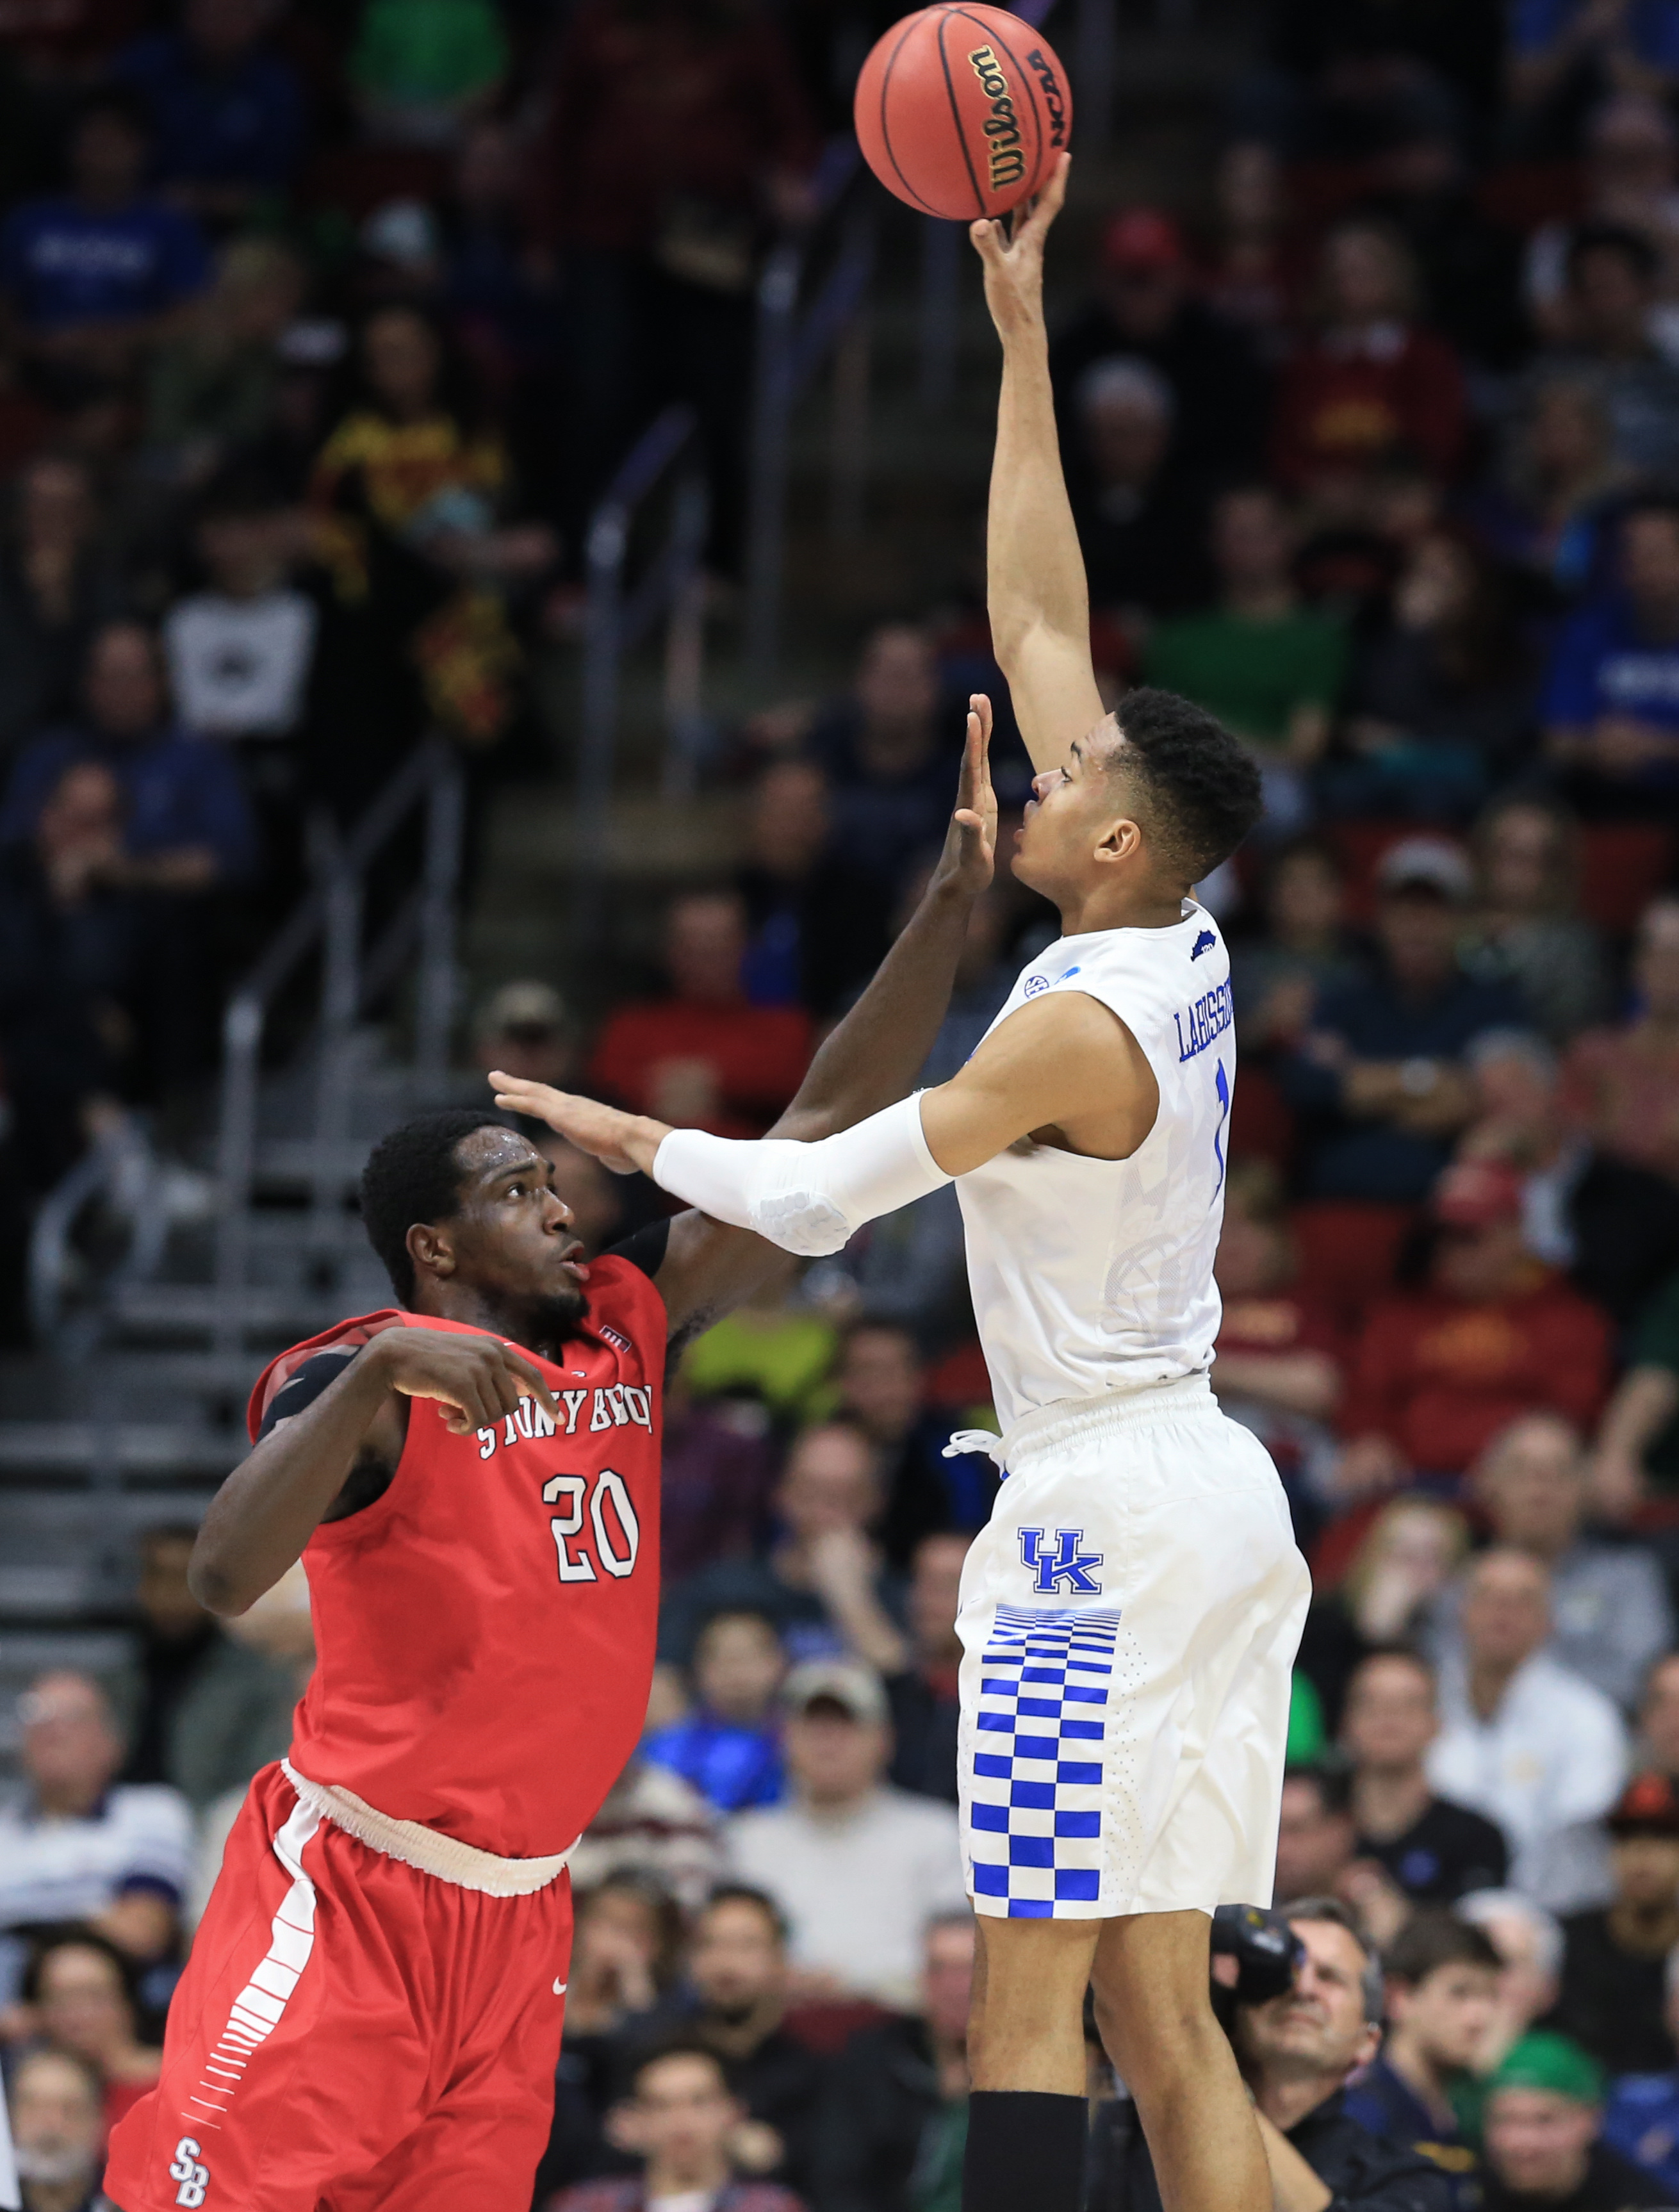 Kentucky's Skal Labissiere (1) shoots over Stony Brook's Jameel Warney (20) during a first-round men's college basketball game in the NCAA Tournament in Des Moines, Iowa, Thursday, March 17, 2016. (AP Photo/Nati Harnik)